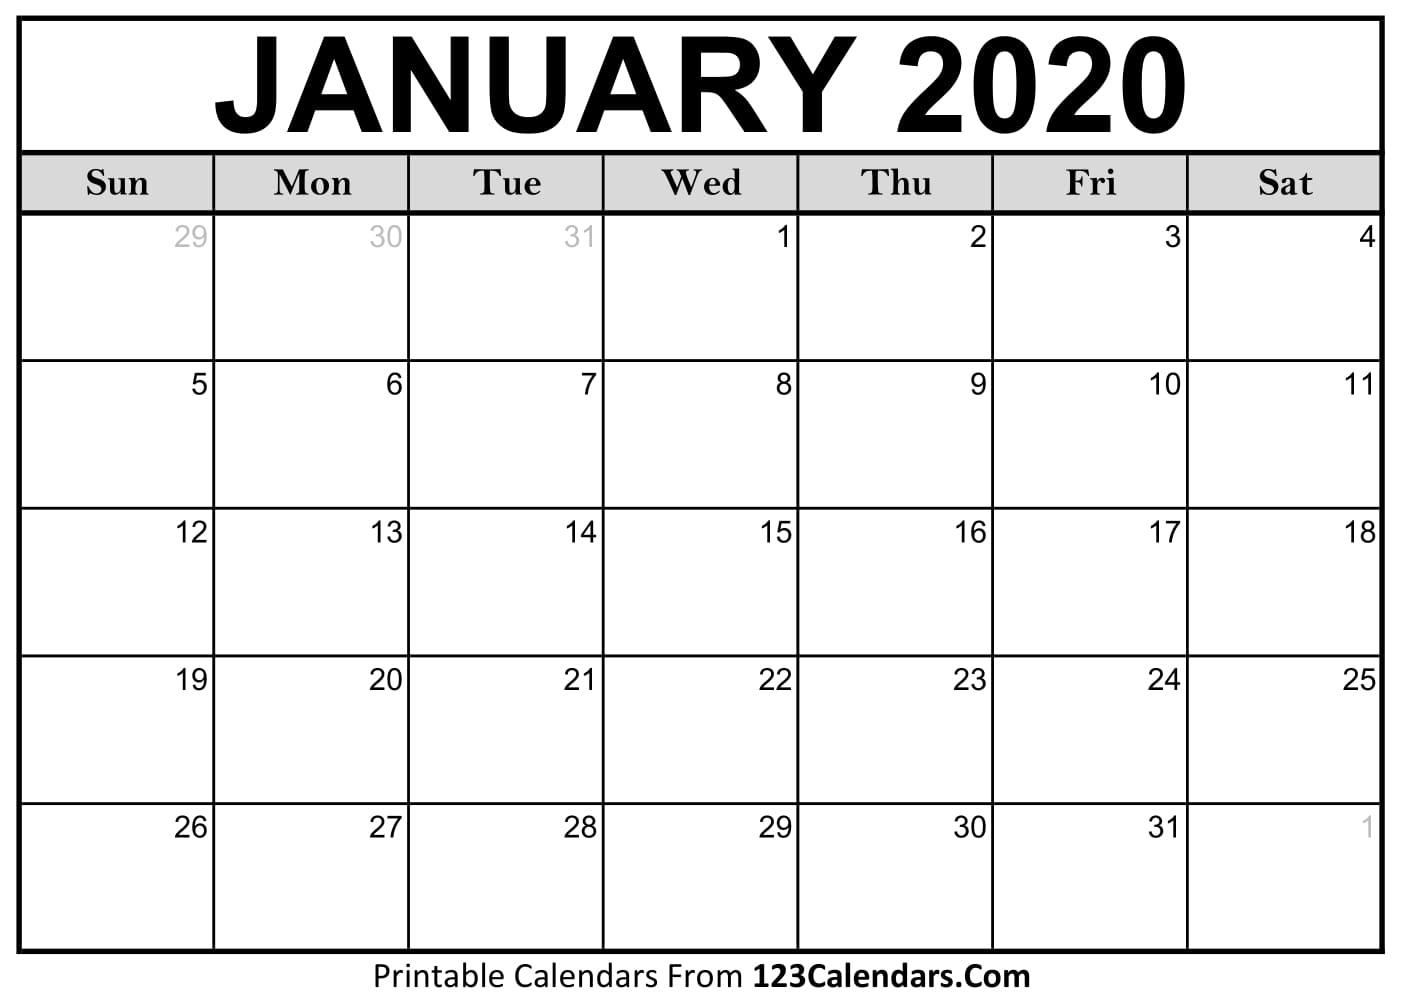 Calendar Events January 2020 January 2020 Printable Calendar | 123Calendars.com